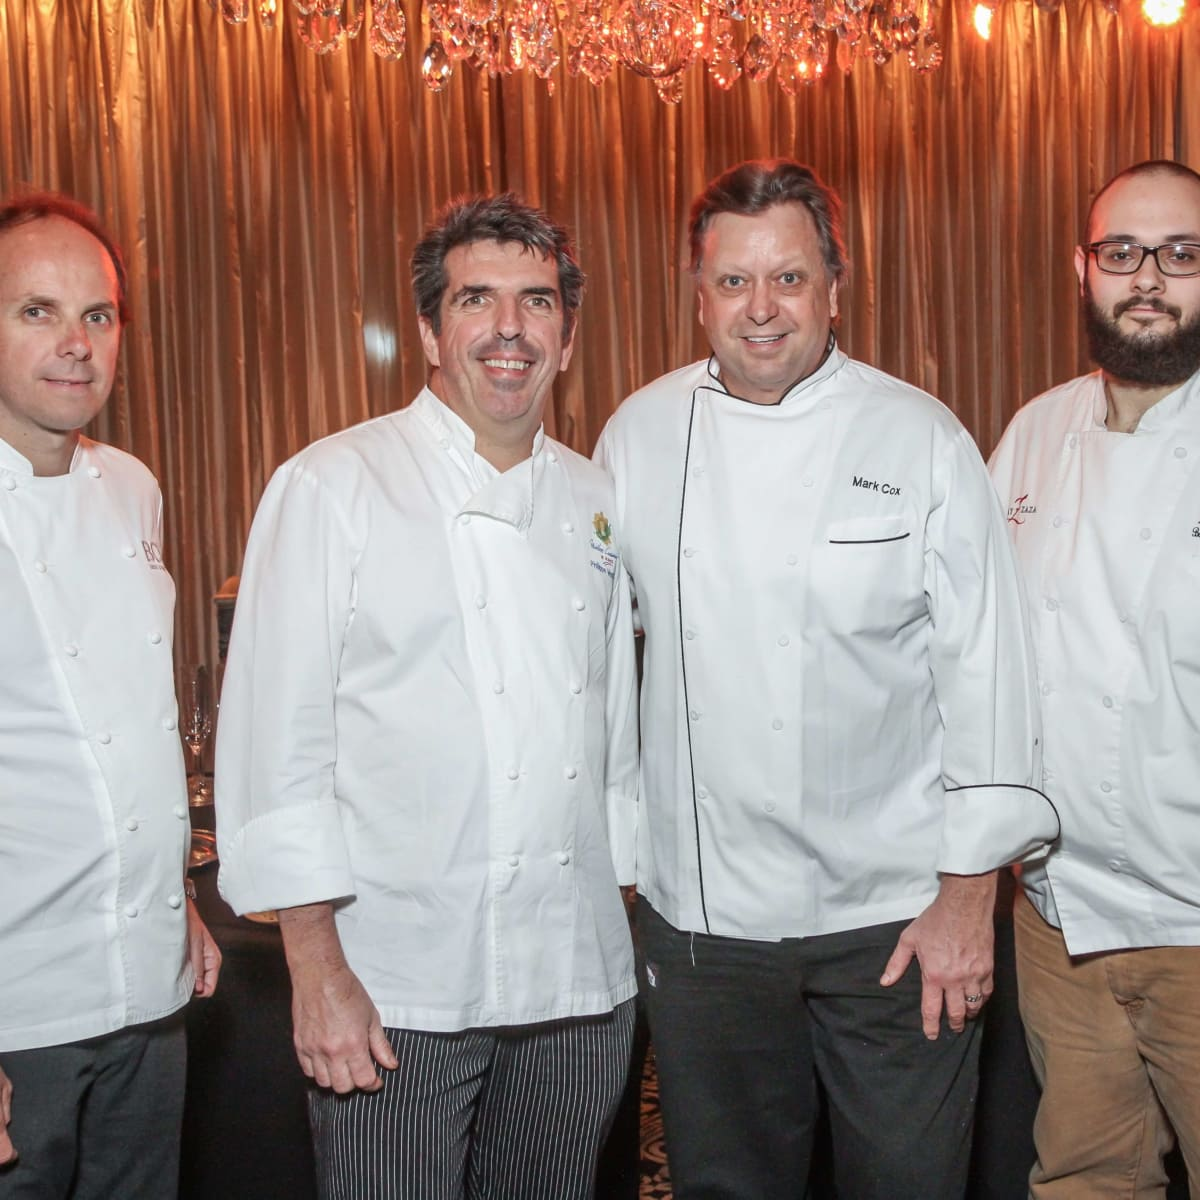 Best Cellars, 9/16 Luis Roger, Philippe Verpiand, Mark Cox, Michael de la Flor